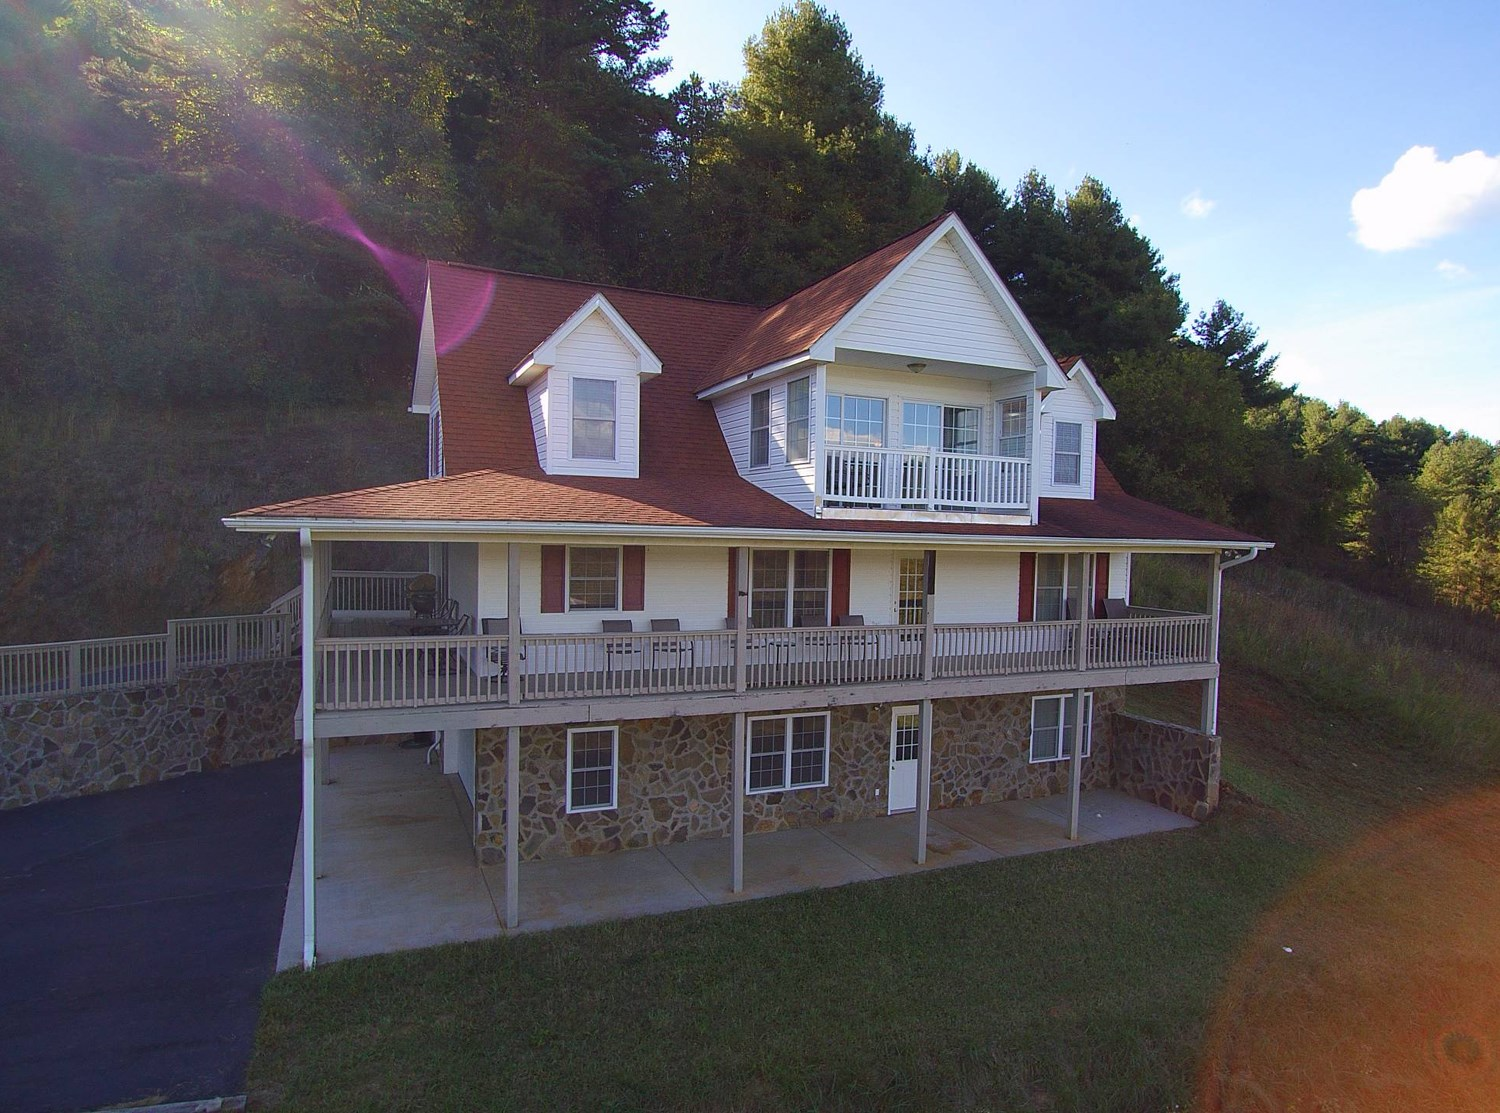 Mountain home, overlooking the New River in the Blue Ridge